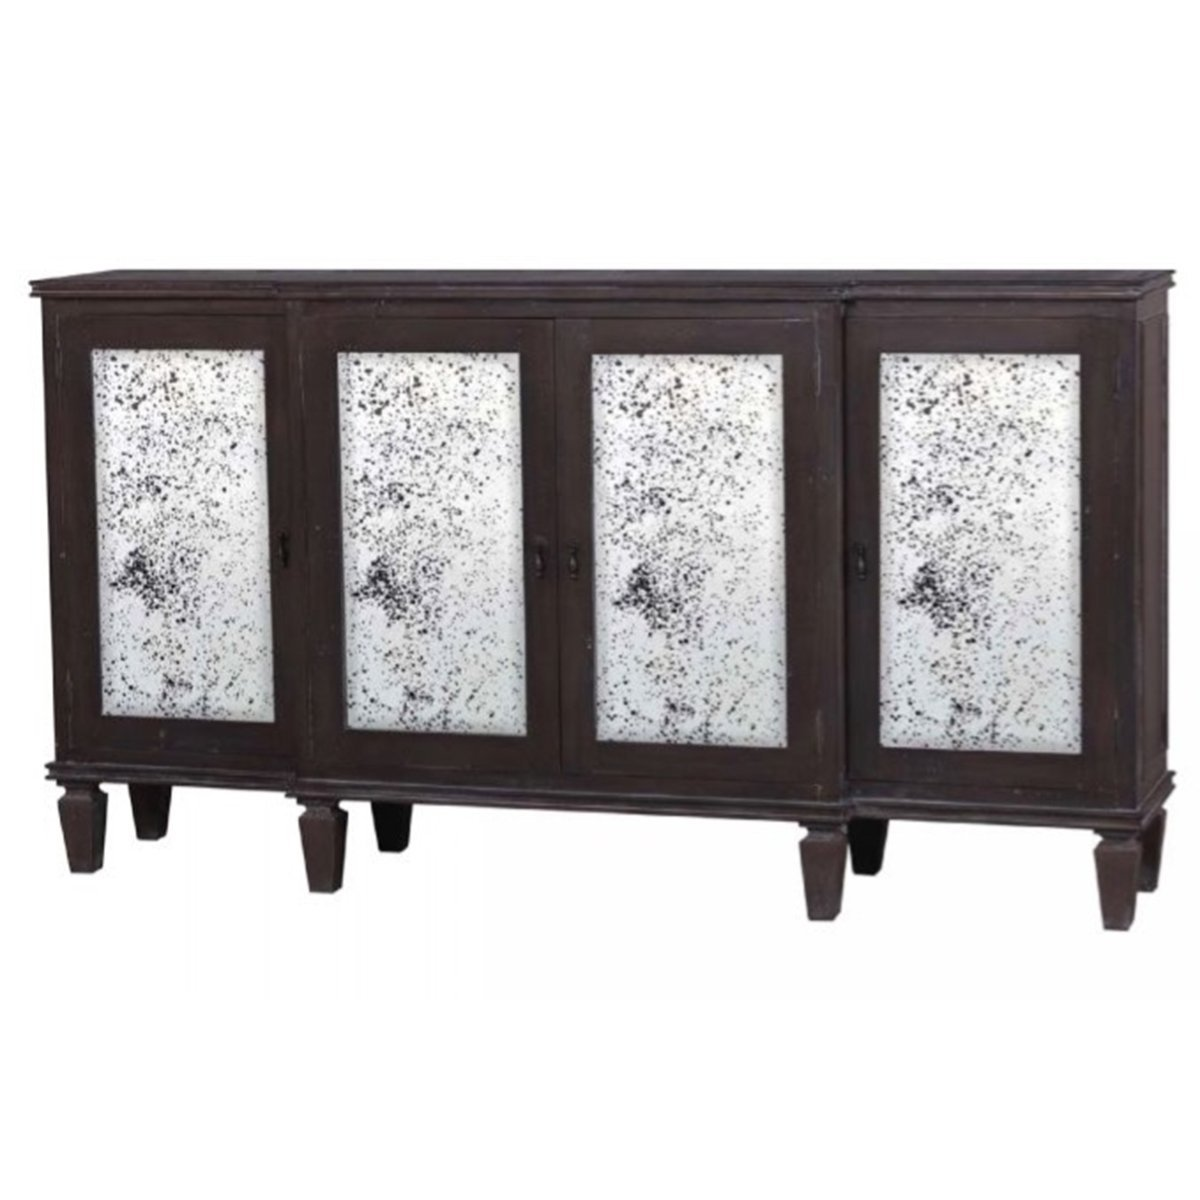 Chelsea Mirror Buffet - Showhome Furniture